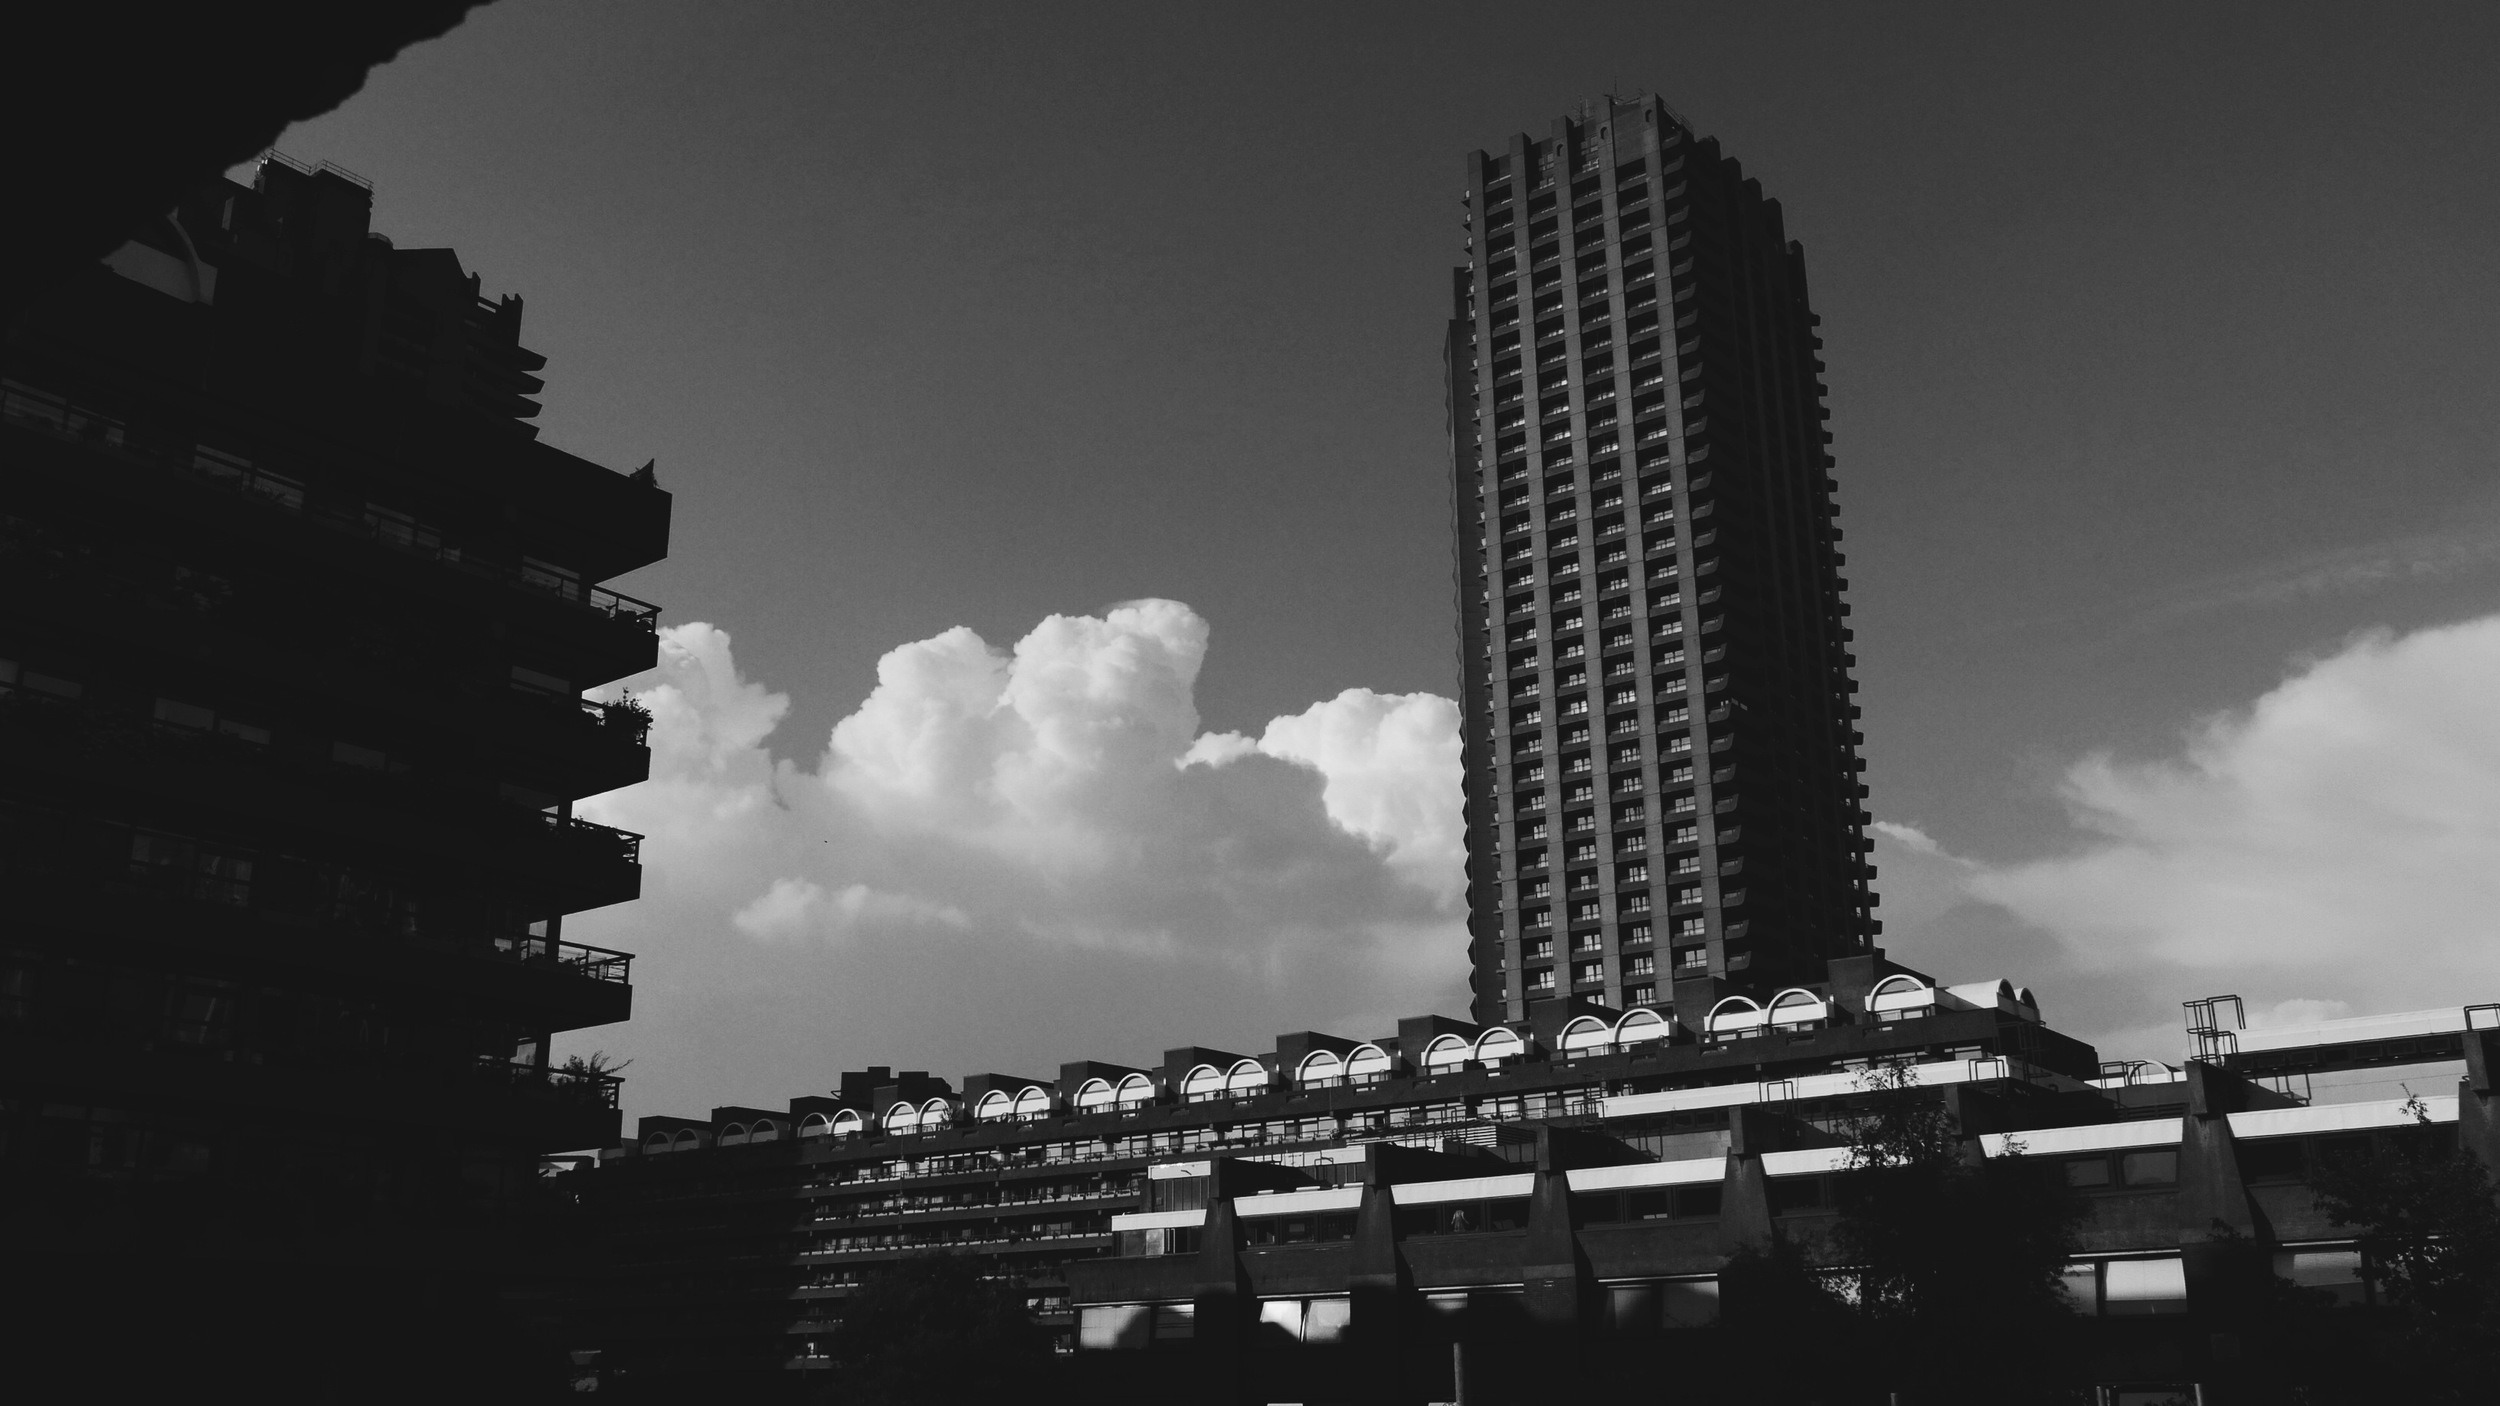 Towering the Barbican